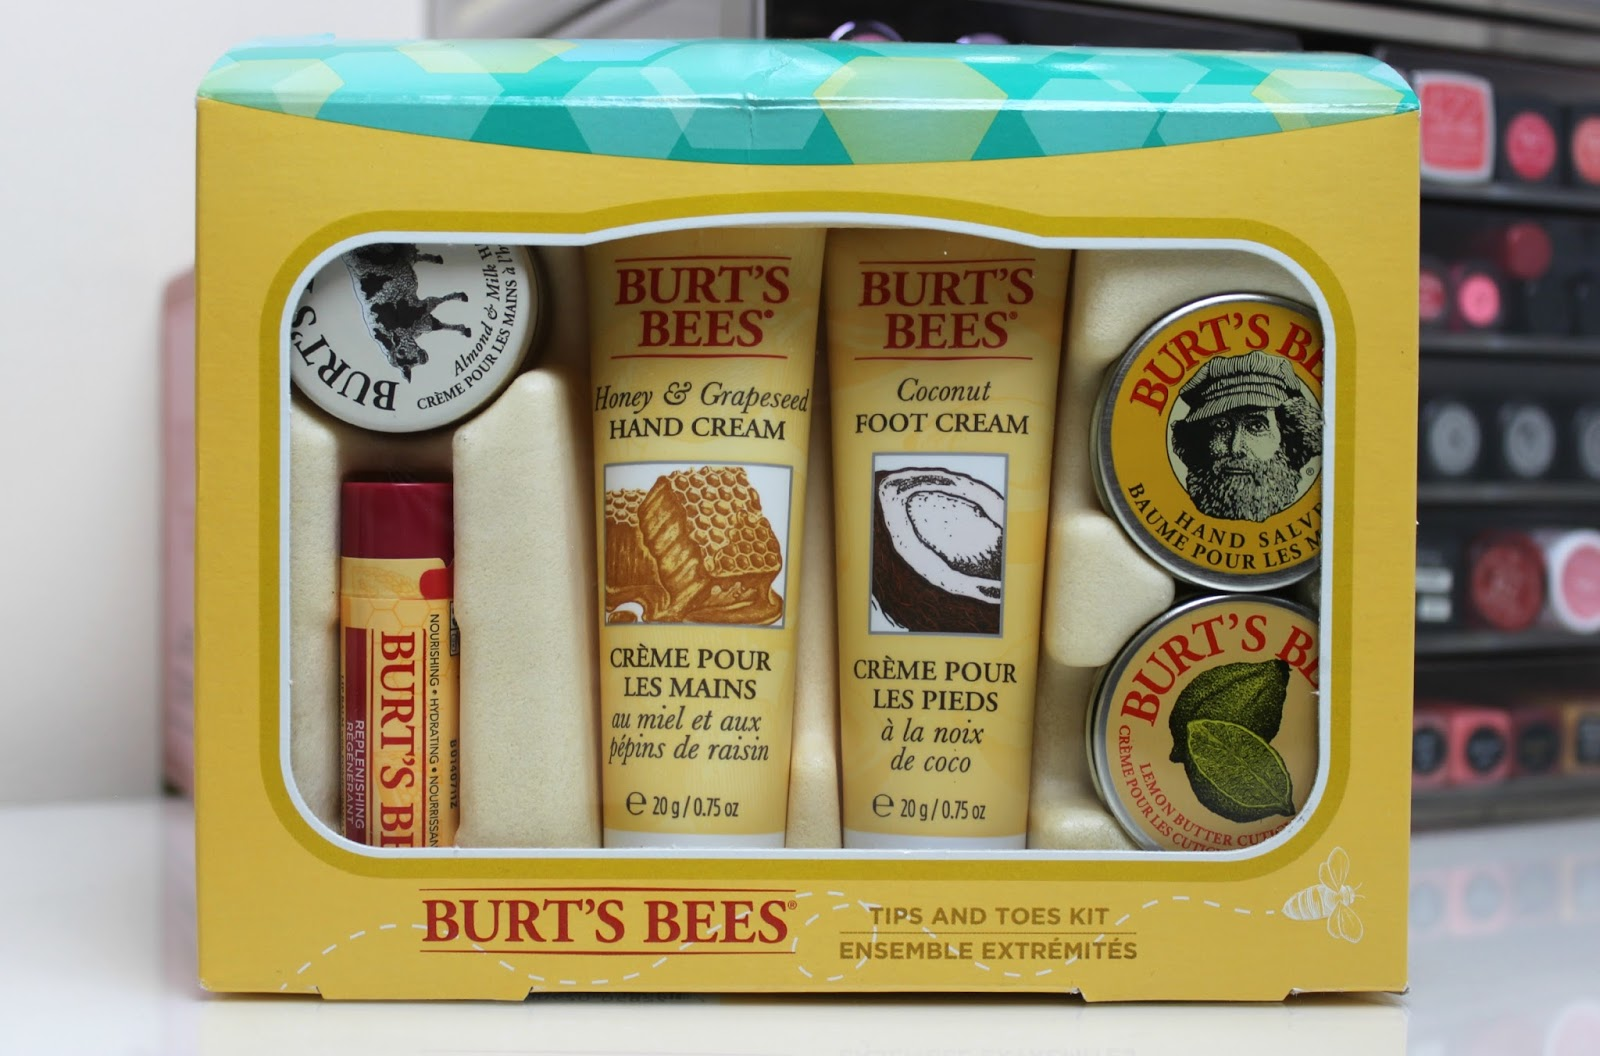 A picture of Burt's Bees Tips and Toes Kit